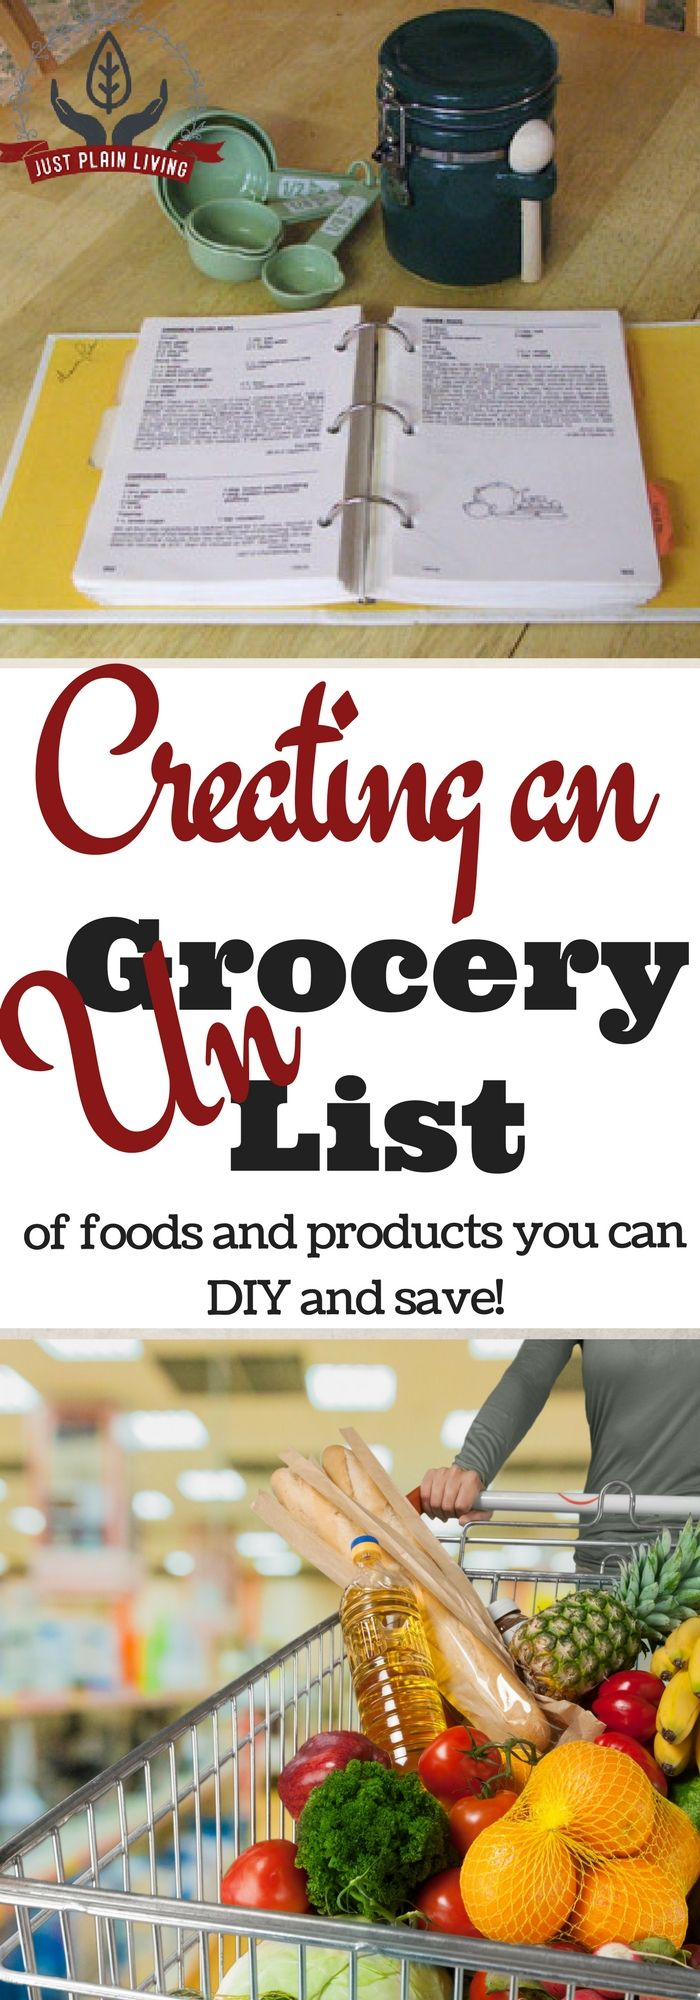 There are so many things that you can make at home instead of buying! Start creating your ungrocery list!